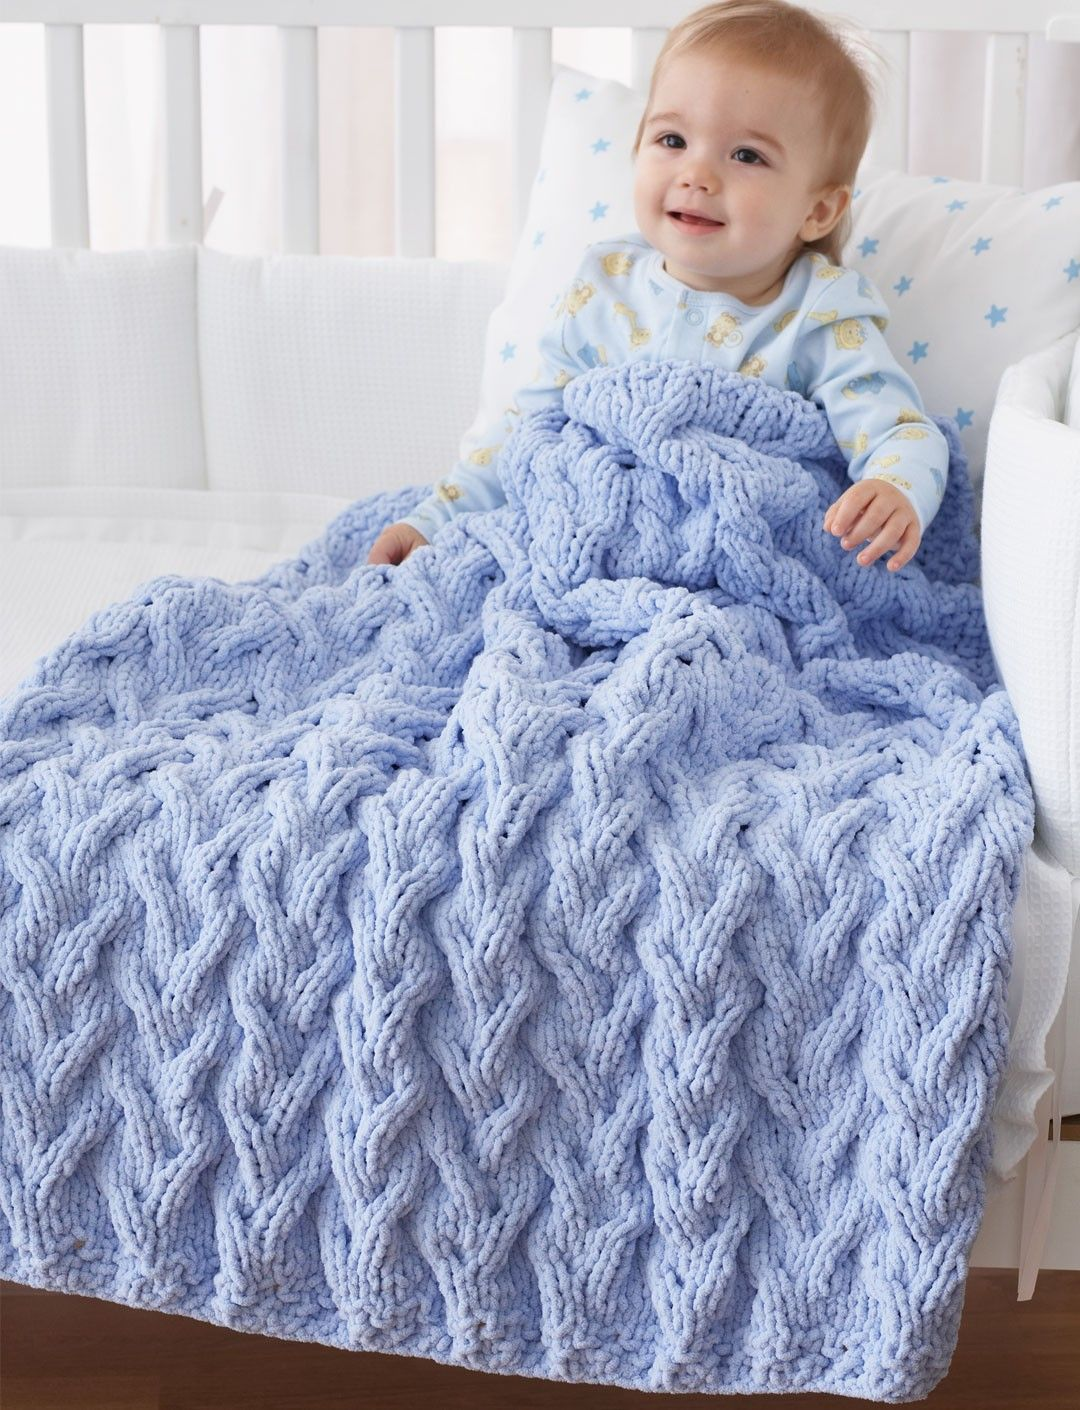 Cable Afghan Knitting Patterns Cable, Blanket and Knitting patterns